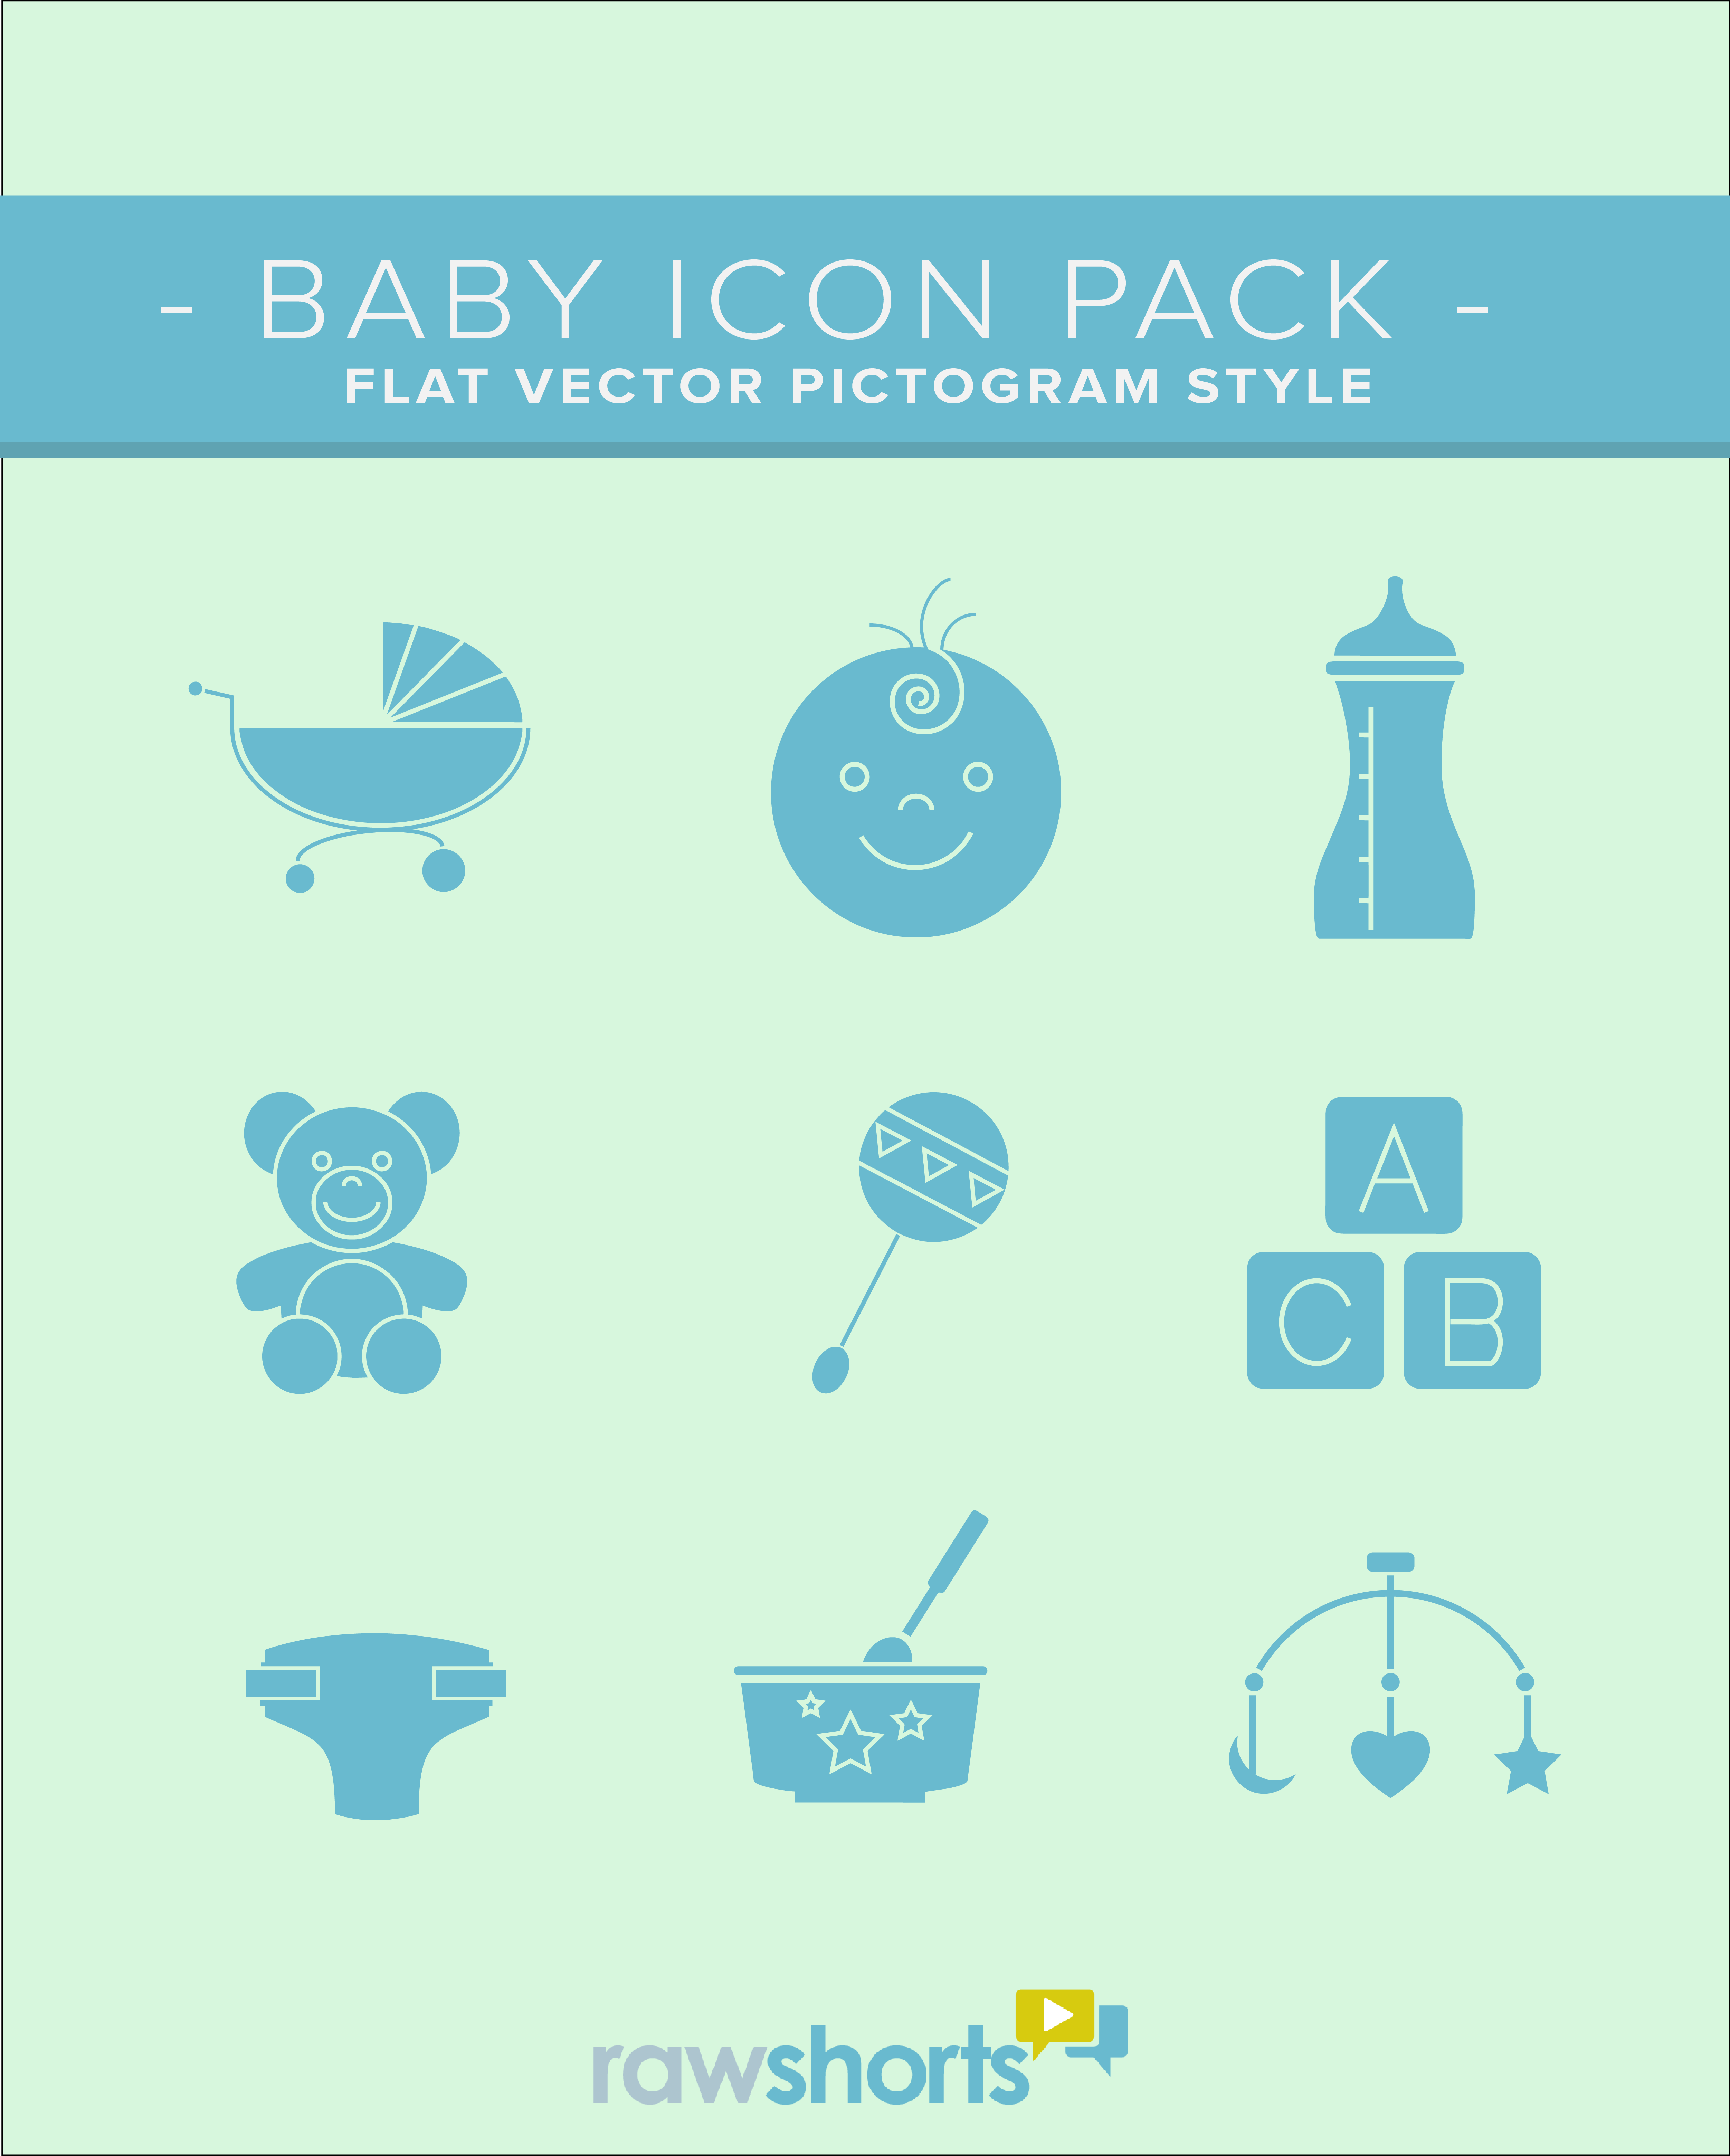 Baby and Newborn Flat Vector Icon Pack